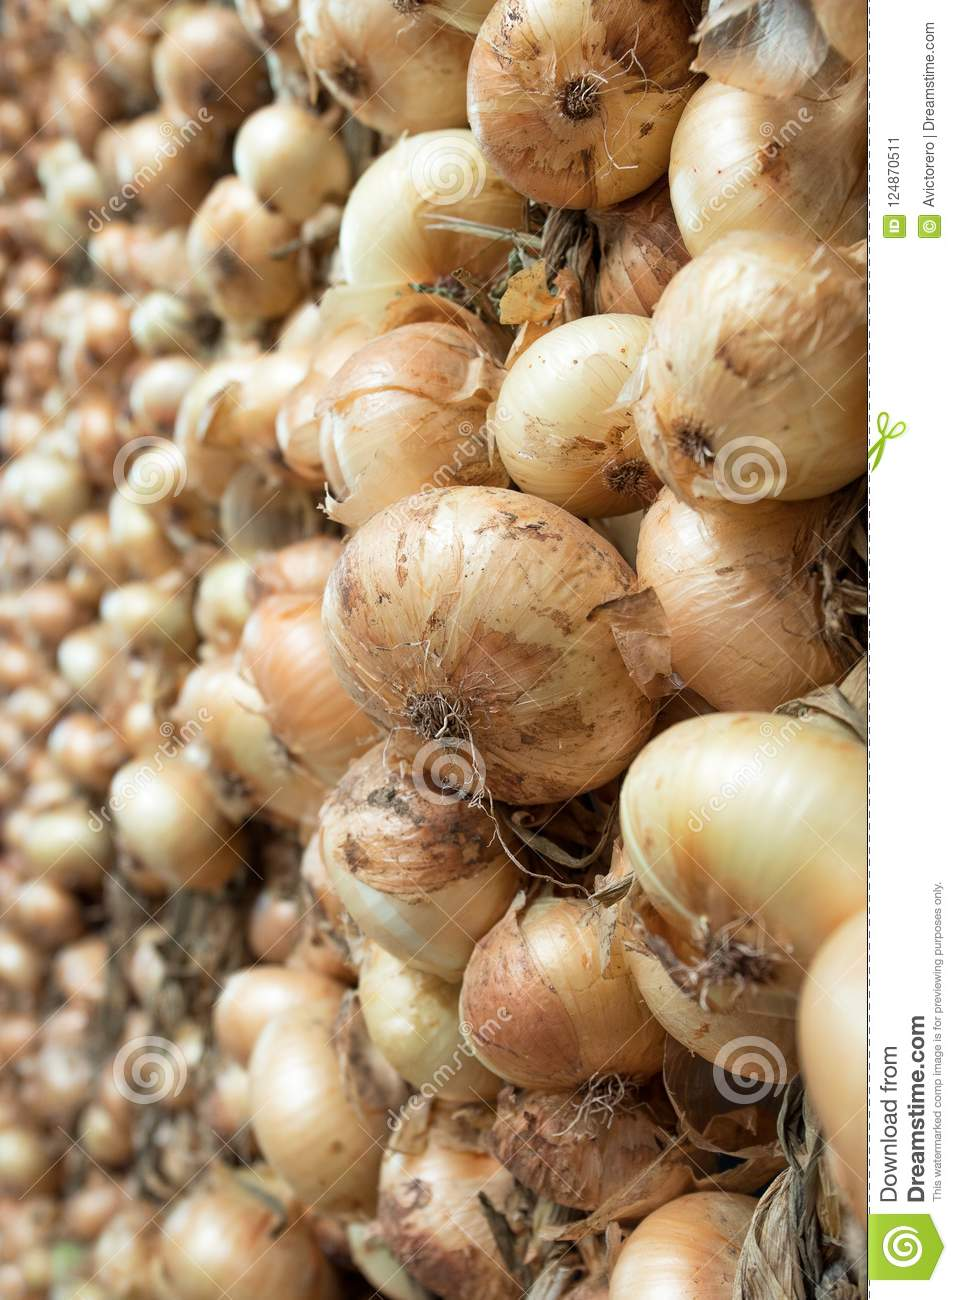 Bunch of hanging onions